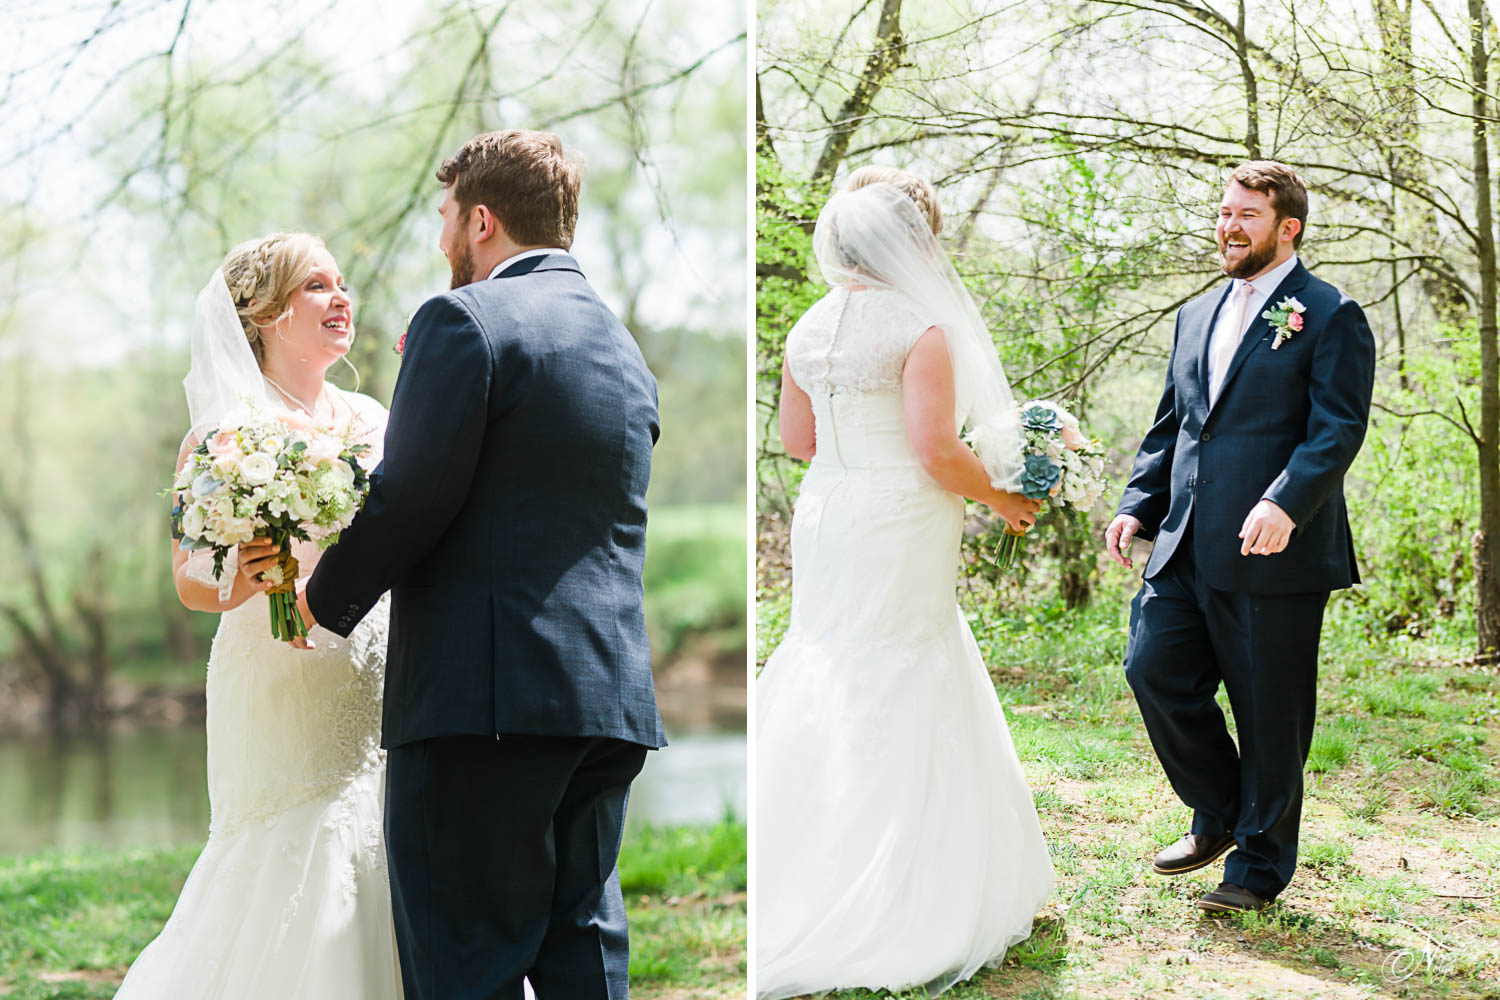 bride and groom walk towards each other smiling happy tears.